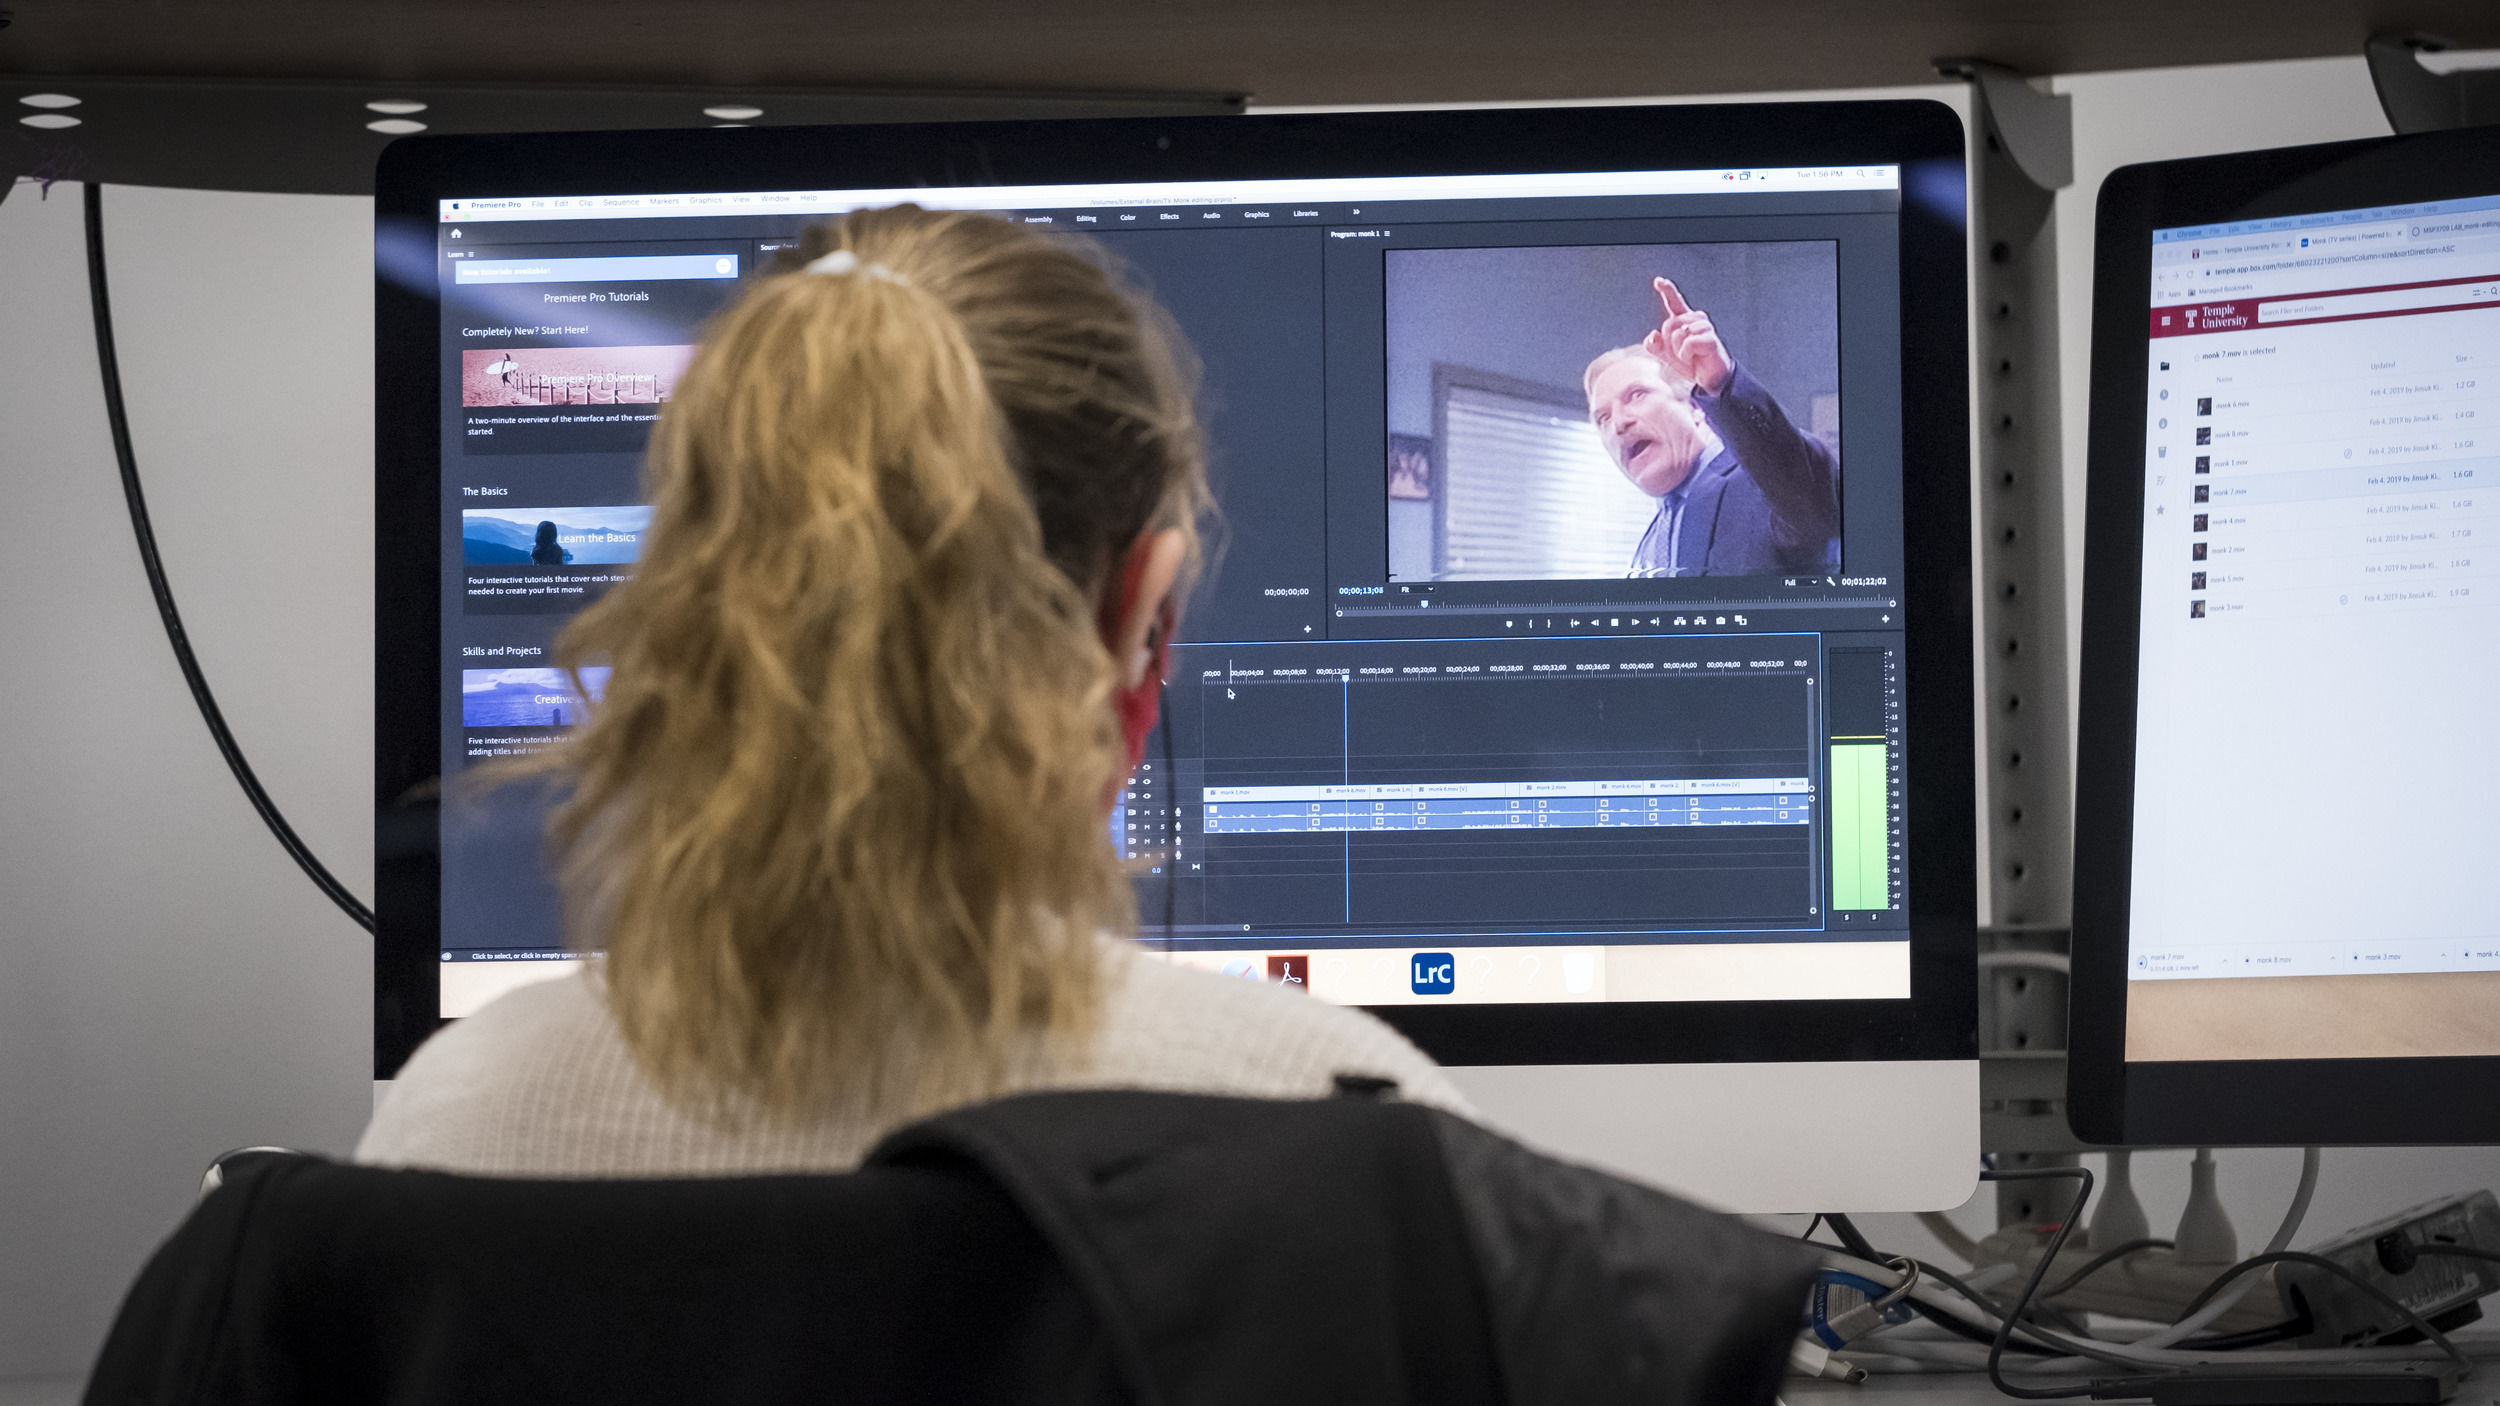 A virtual lesson is underway for a Temple student.